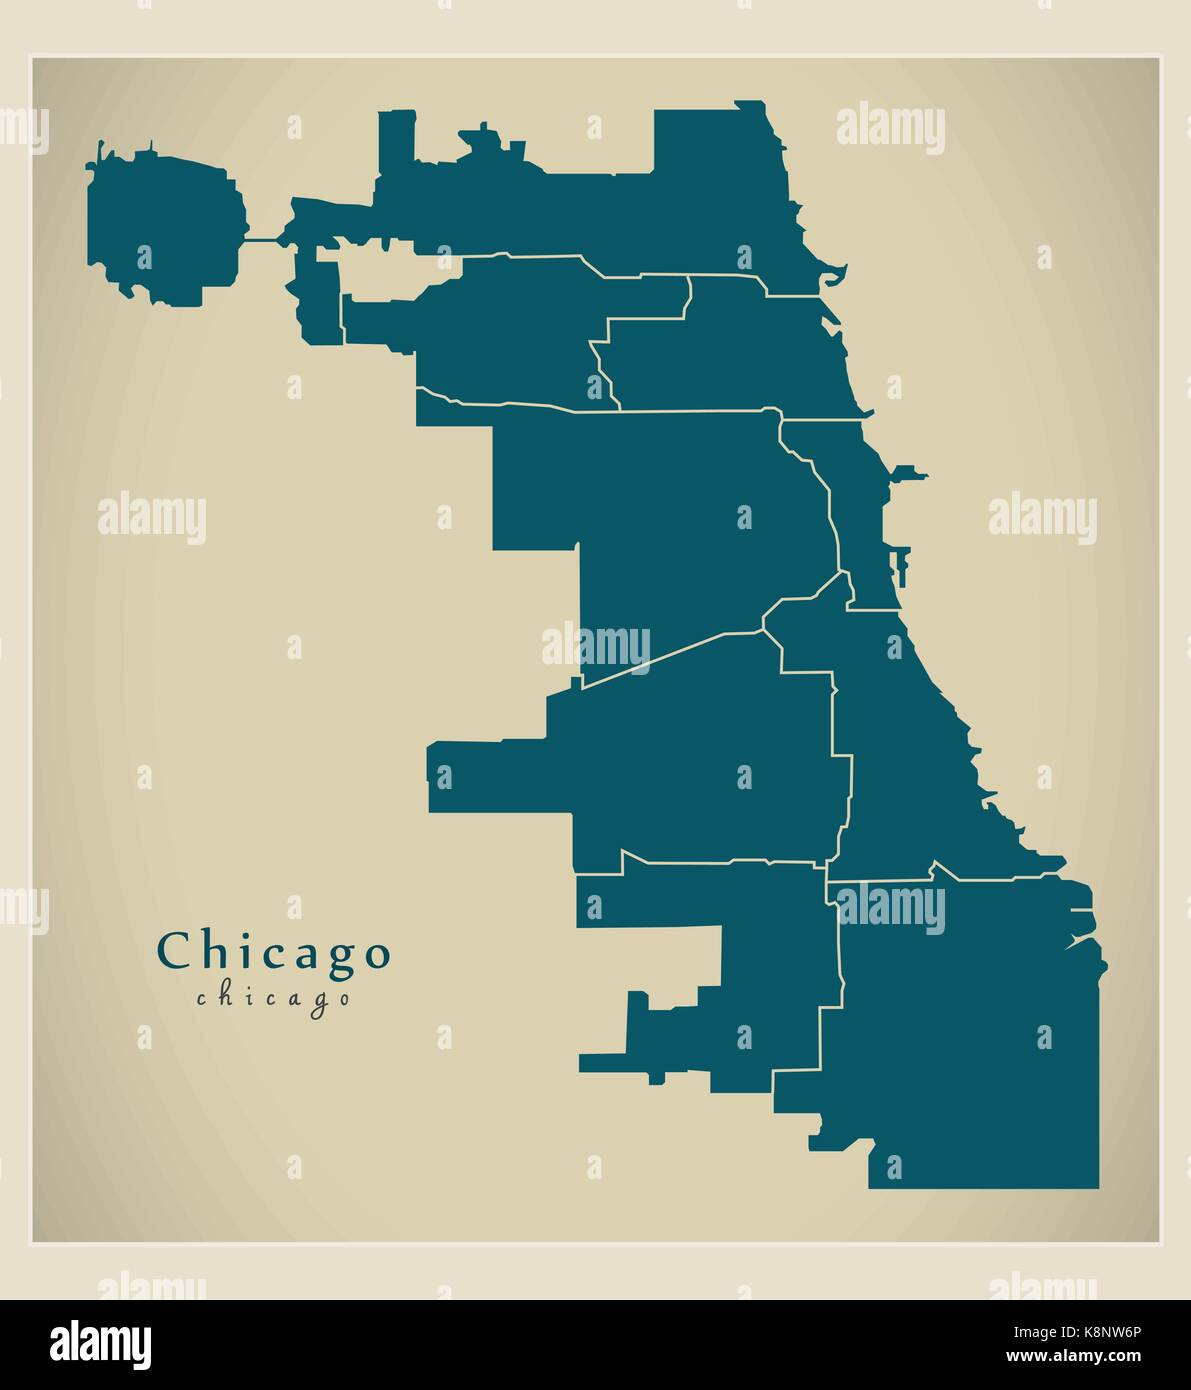 Chicago Boroughs Map Modern City Map   Chicago city of the USA with boroughs Stock